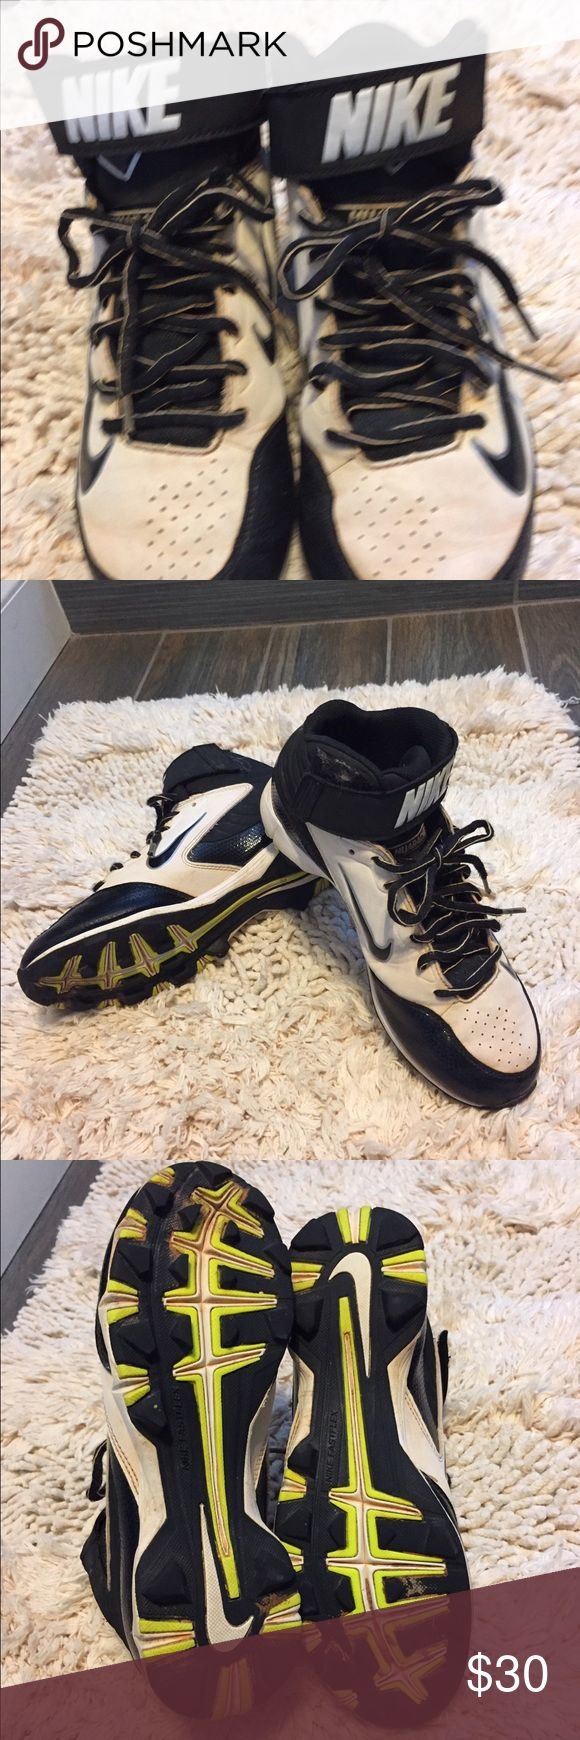 Nike High Top Baseball Leather Cleats Nike Huaraches High Top Leather Baseball Cleats Boys Size 6 1/2. Black and White. In great condition Very Solid Nike Huarache Shoes